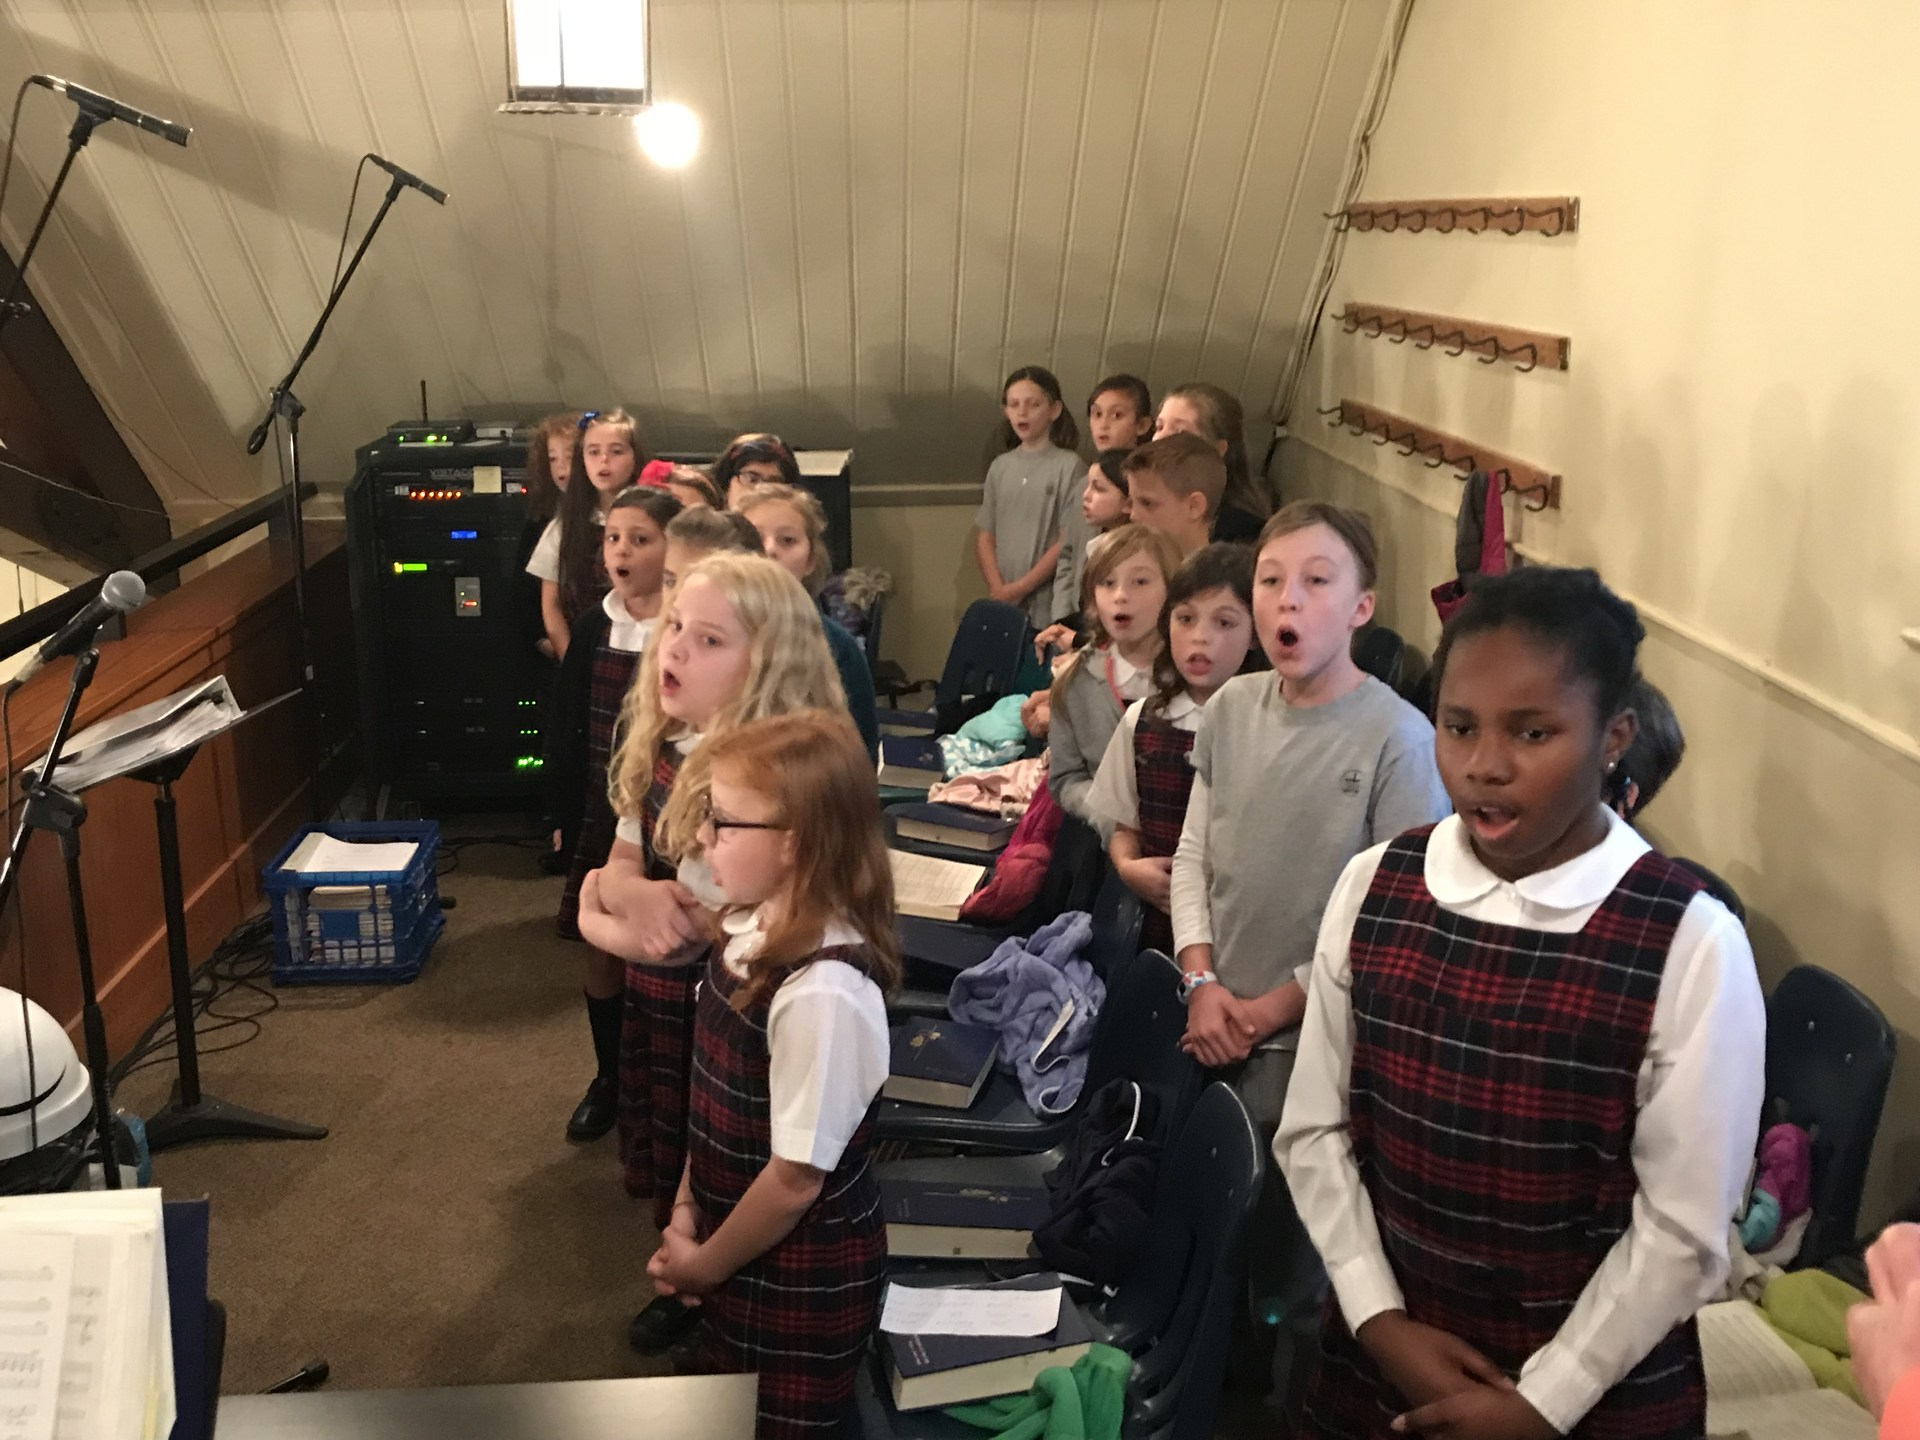 Students sing in choir at church